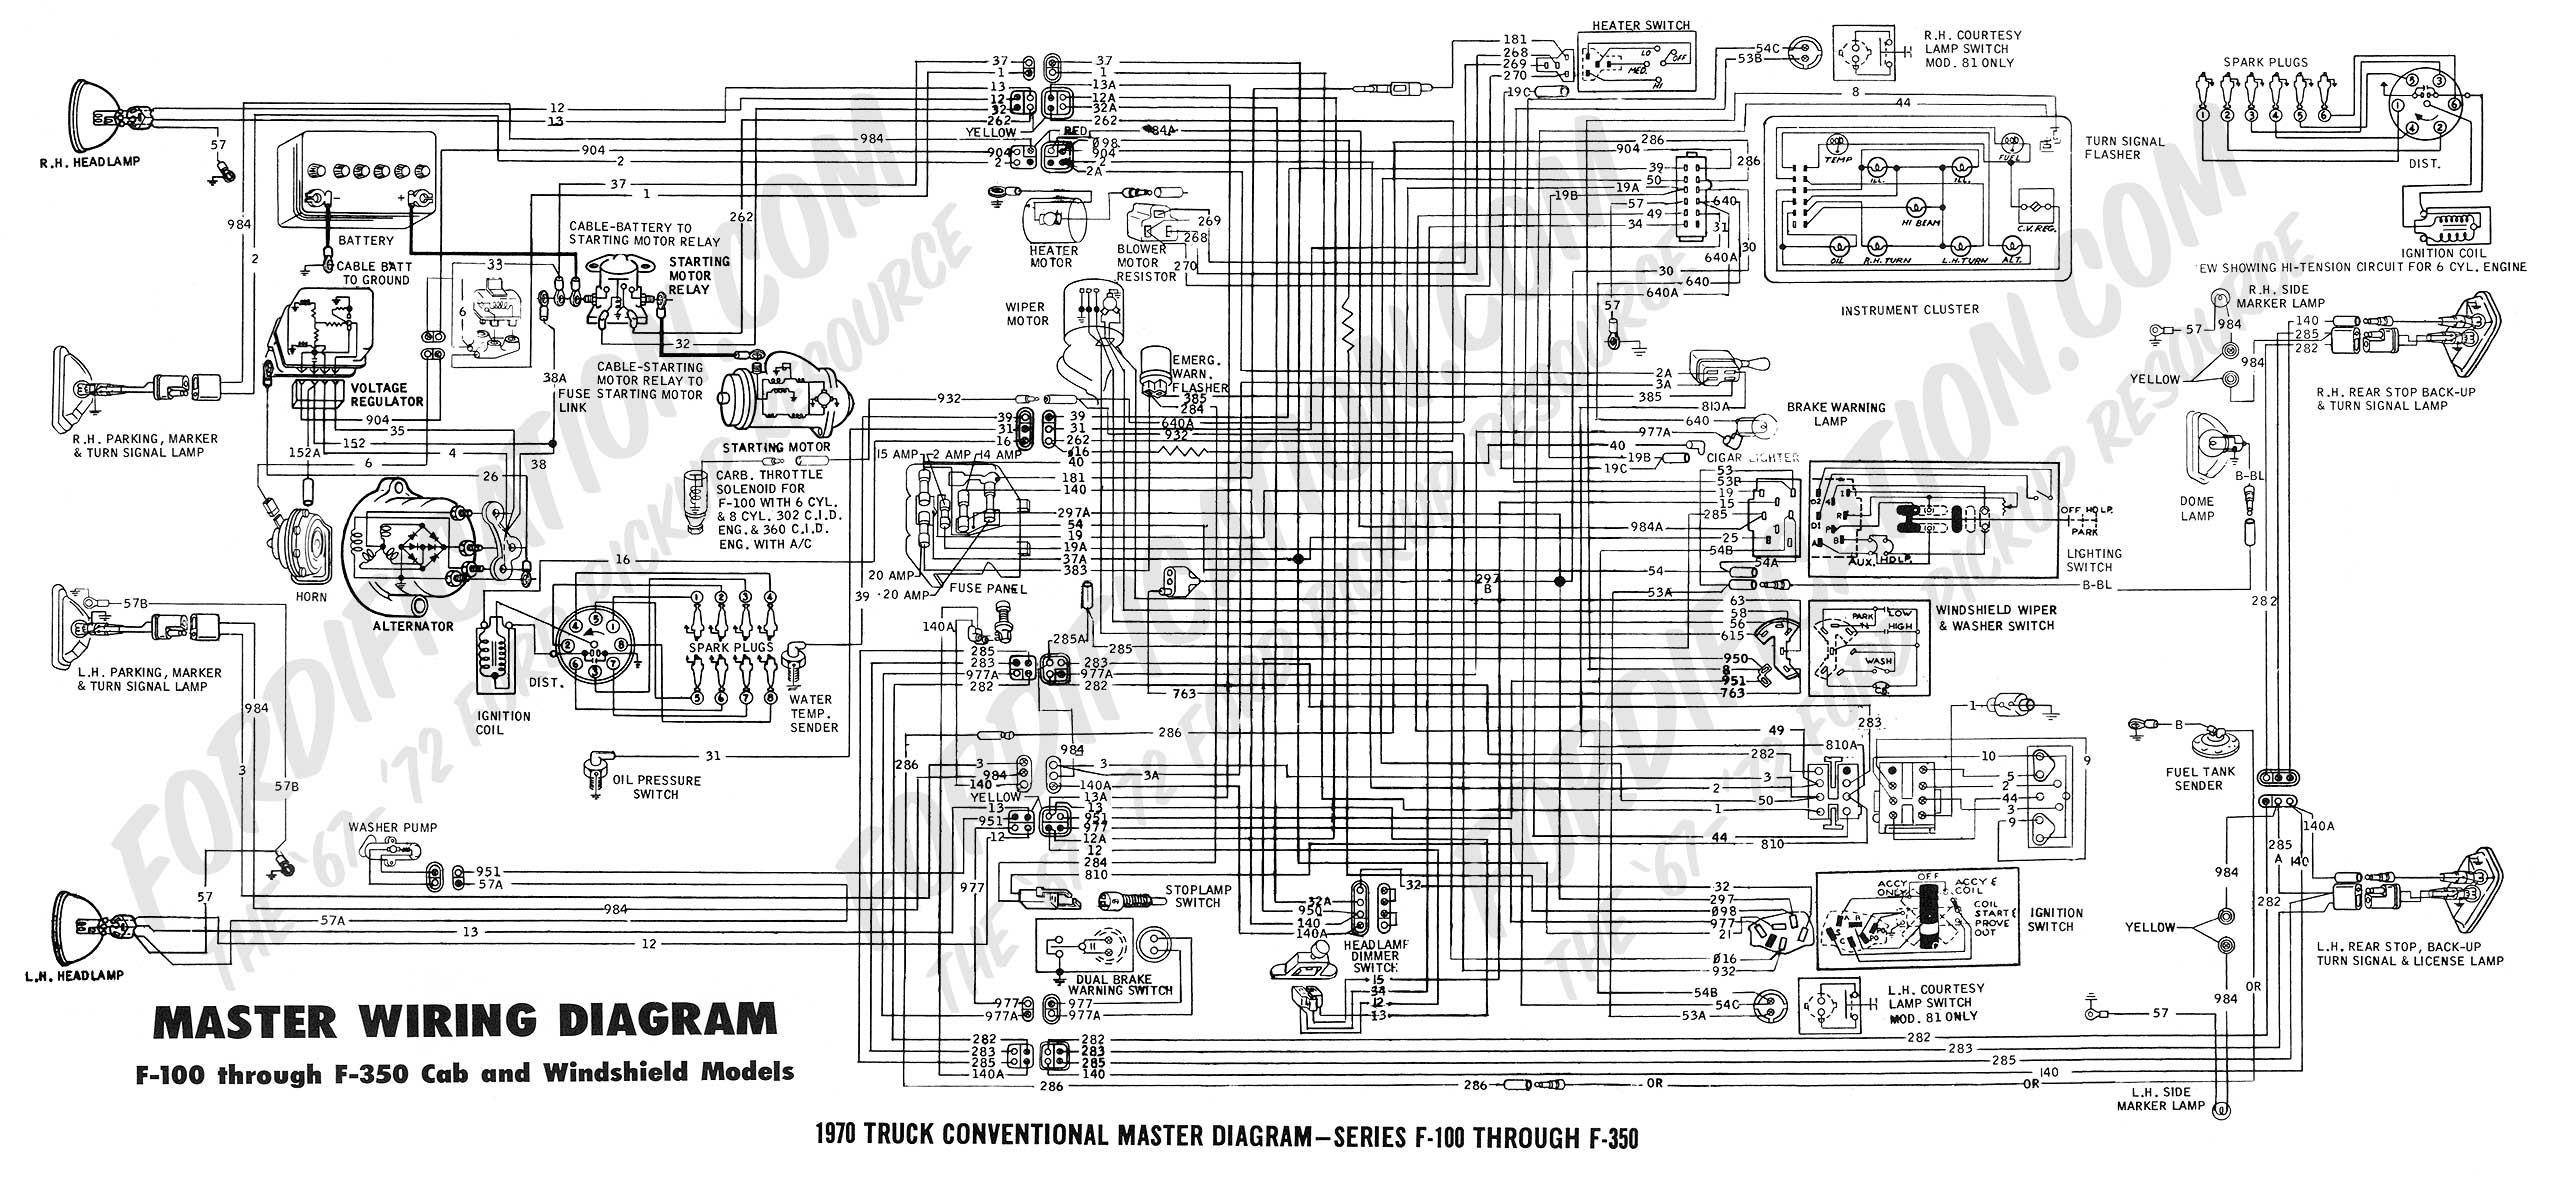 wiring diagram 70_master f450 wiring diagram f250 wiring diagram 2016 \u2022 wiring diagrams j Ford F-150 Rear Brake Caliper at edmiracle.co